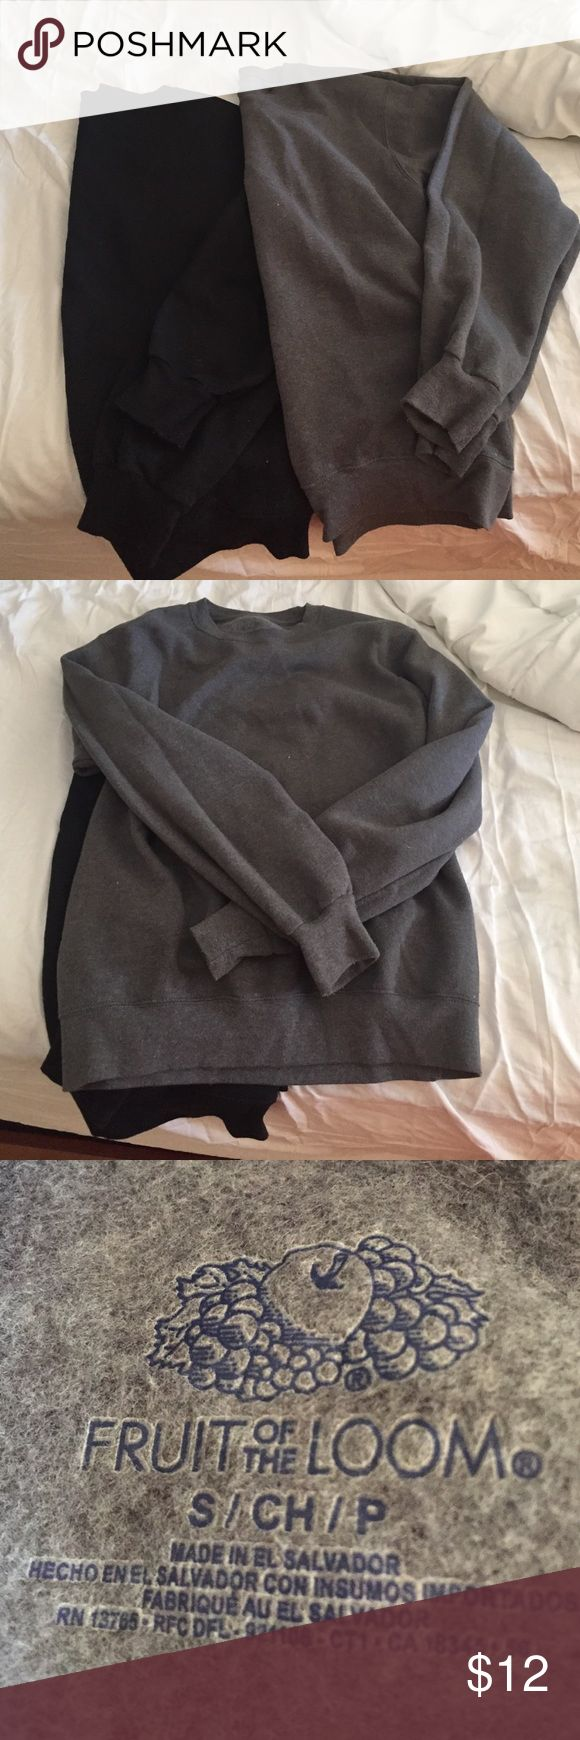 Fruit of the loom sweat shirts (2) Fruit of the loom sweat shirts (2); both size small. worn/washed/used. no trades Fruit of the Loom Tops Sweatshirts & Hoodies